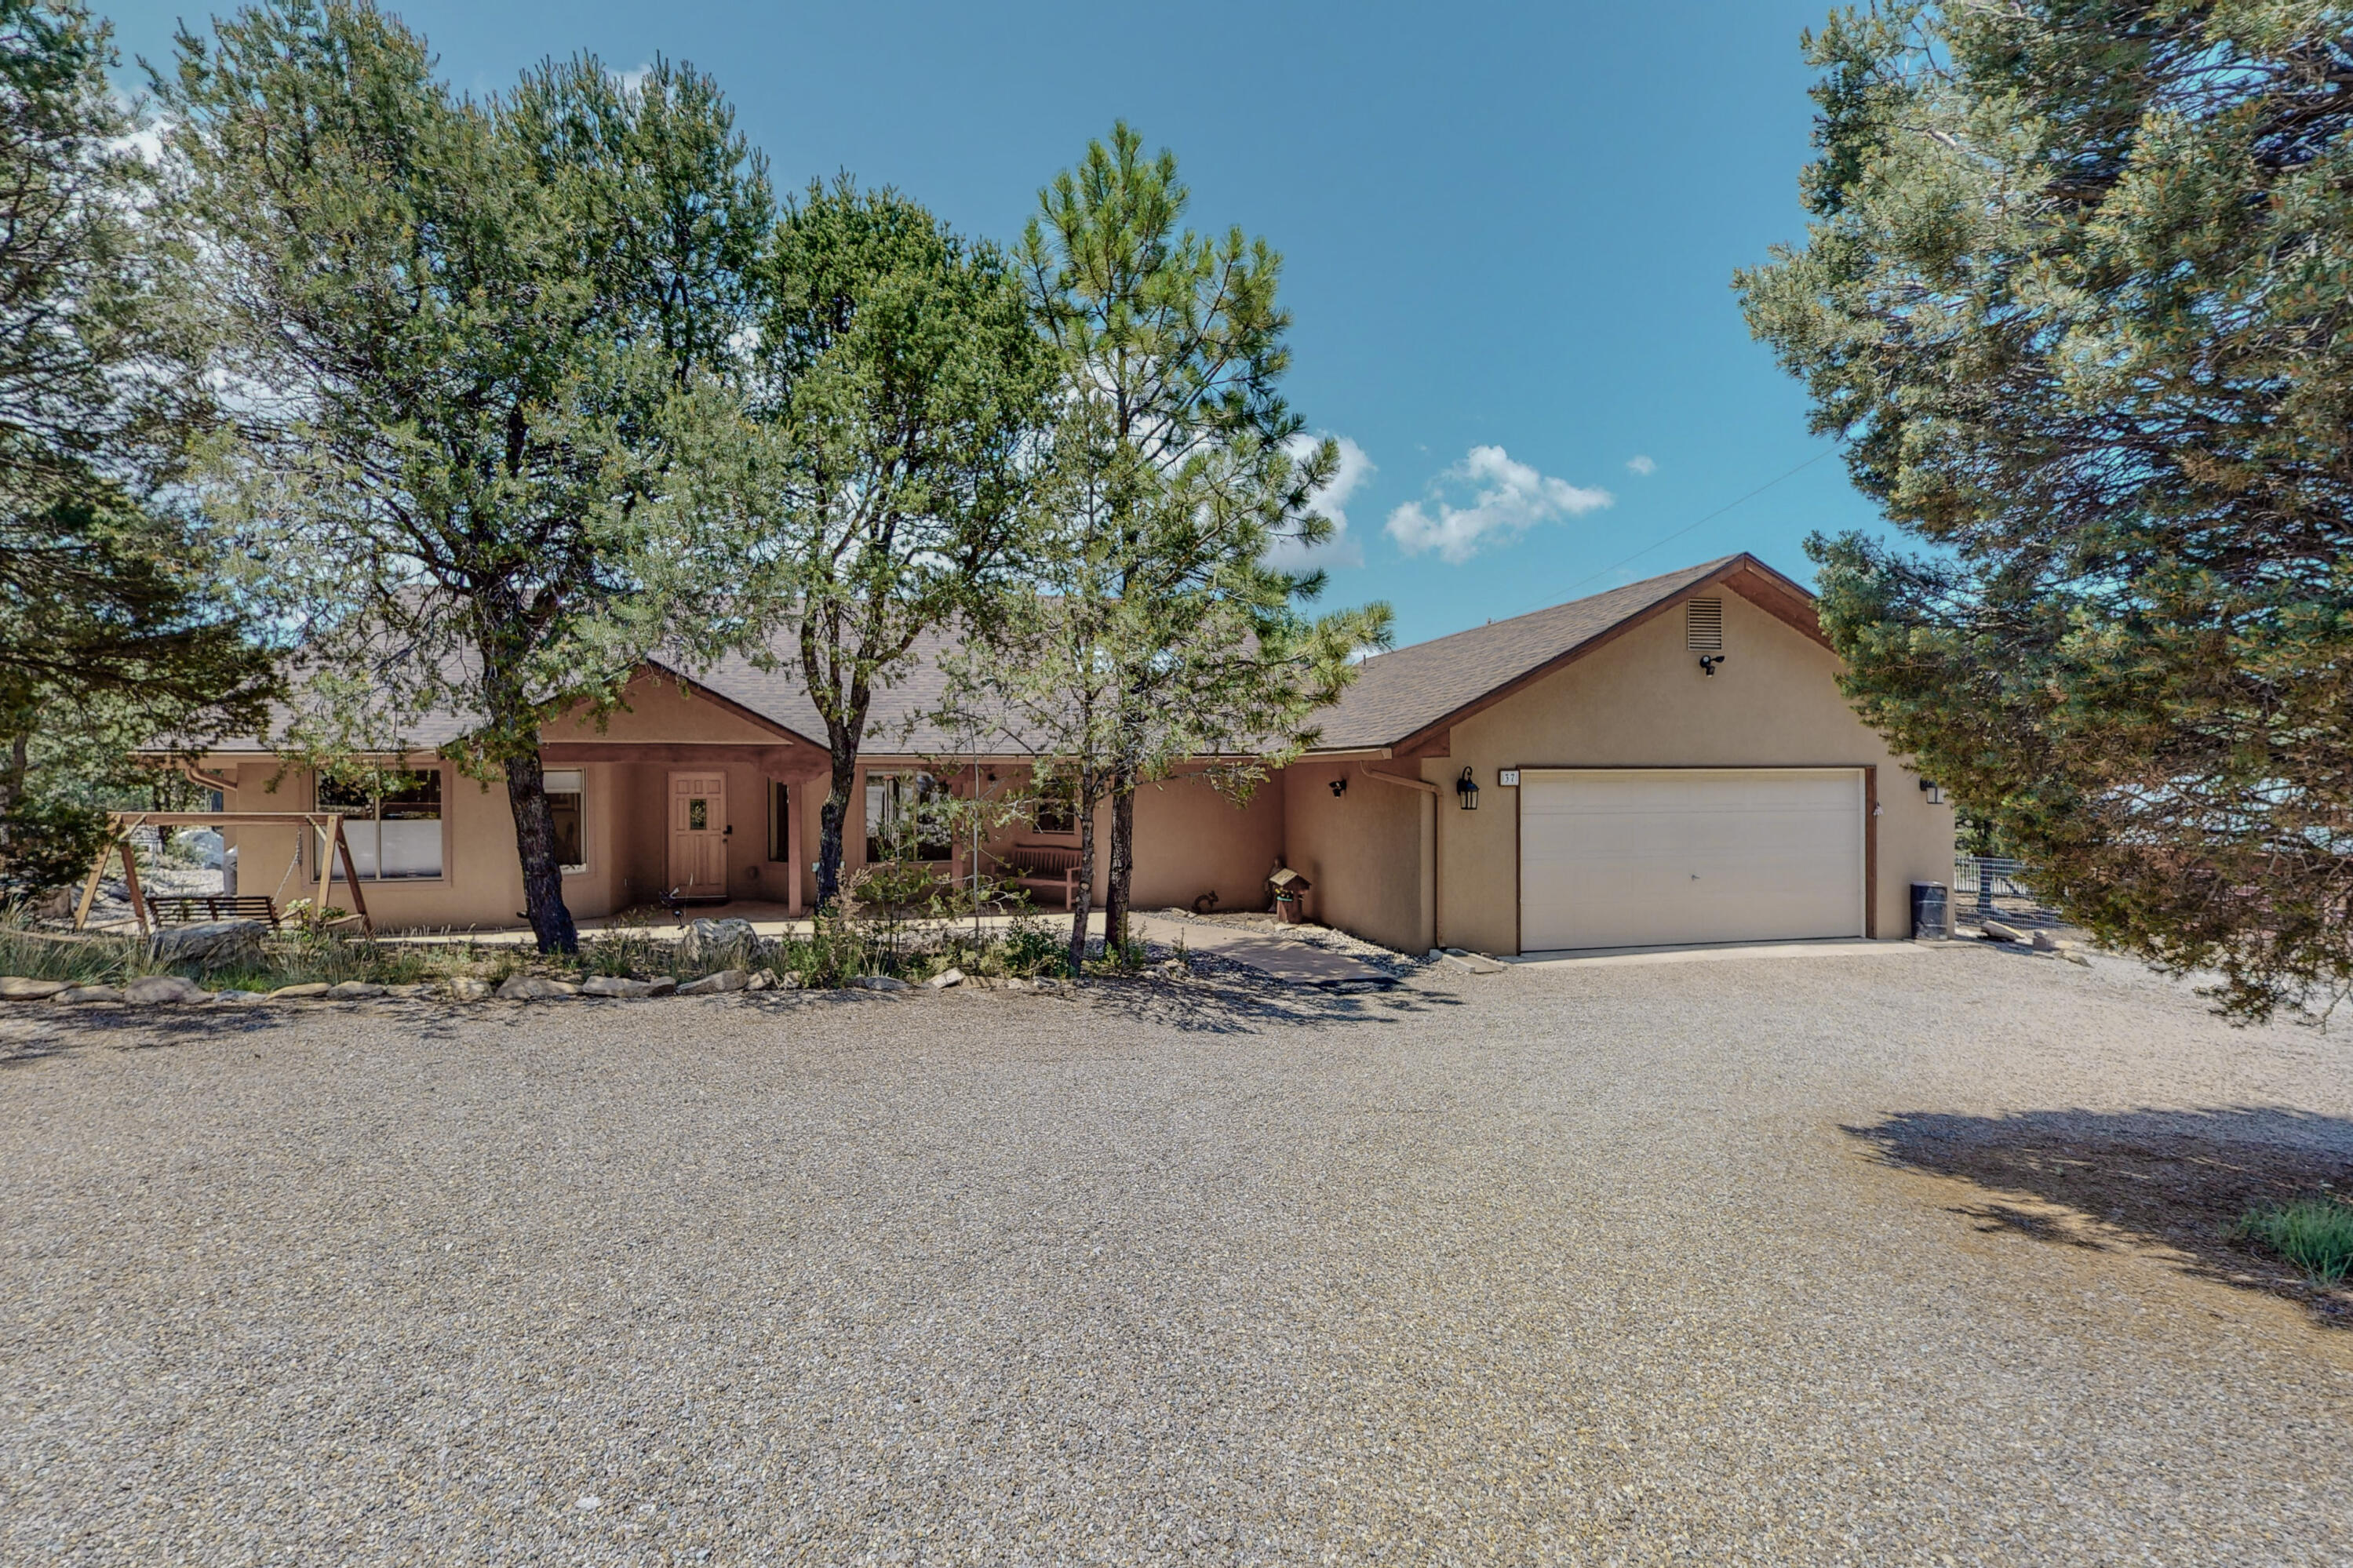 Super quality home that has been updated and impeccably maintained.  Covered front porch for relaxing in the shade.  Travertine floors, vaulted ceiling.  Living room has views and a cozy pellet stove.  Country kitchen with granite counter tops, stainless GE appliances , loads of cabinets and a pantry.  Primary bedroom with huge walk in closet, spacious bath with all new fixtures and shower doors, jetted tub, separate shower. Door to back deck and rough in for hot tub. Separate study or home office. Two ample bedrooms on other side with bath. Insulated, finished garage with attic storage a work shop area.  Wooded 2plus acres with maintenance free landscaping.  Covered back deck, large level play area, 16X20 shed. Pipe fencing on the front, gated driveway. RV pad w gate and power